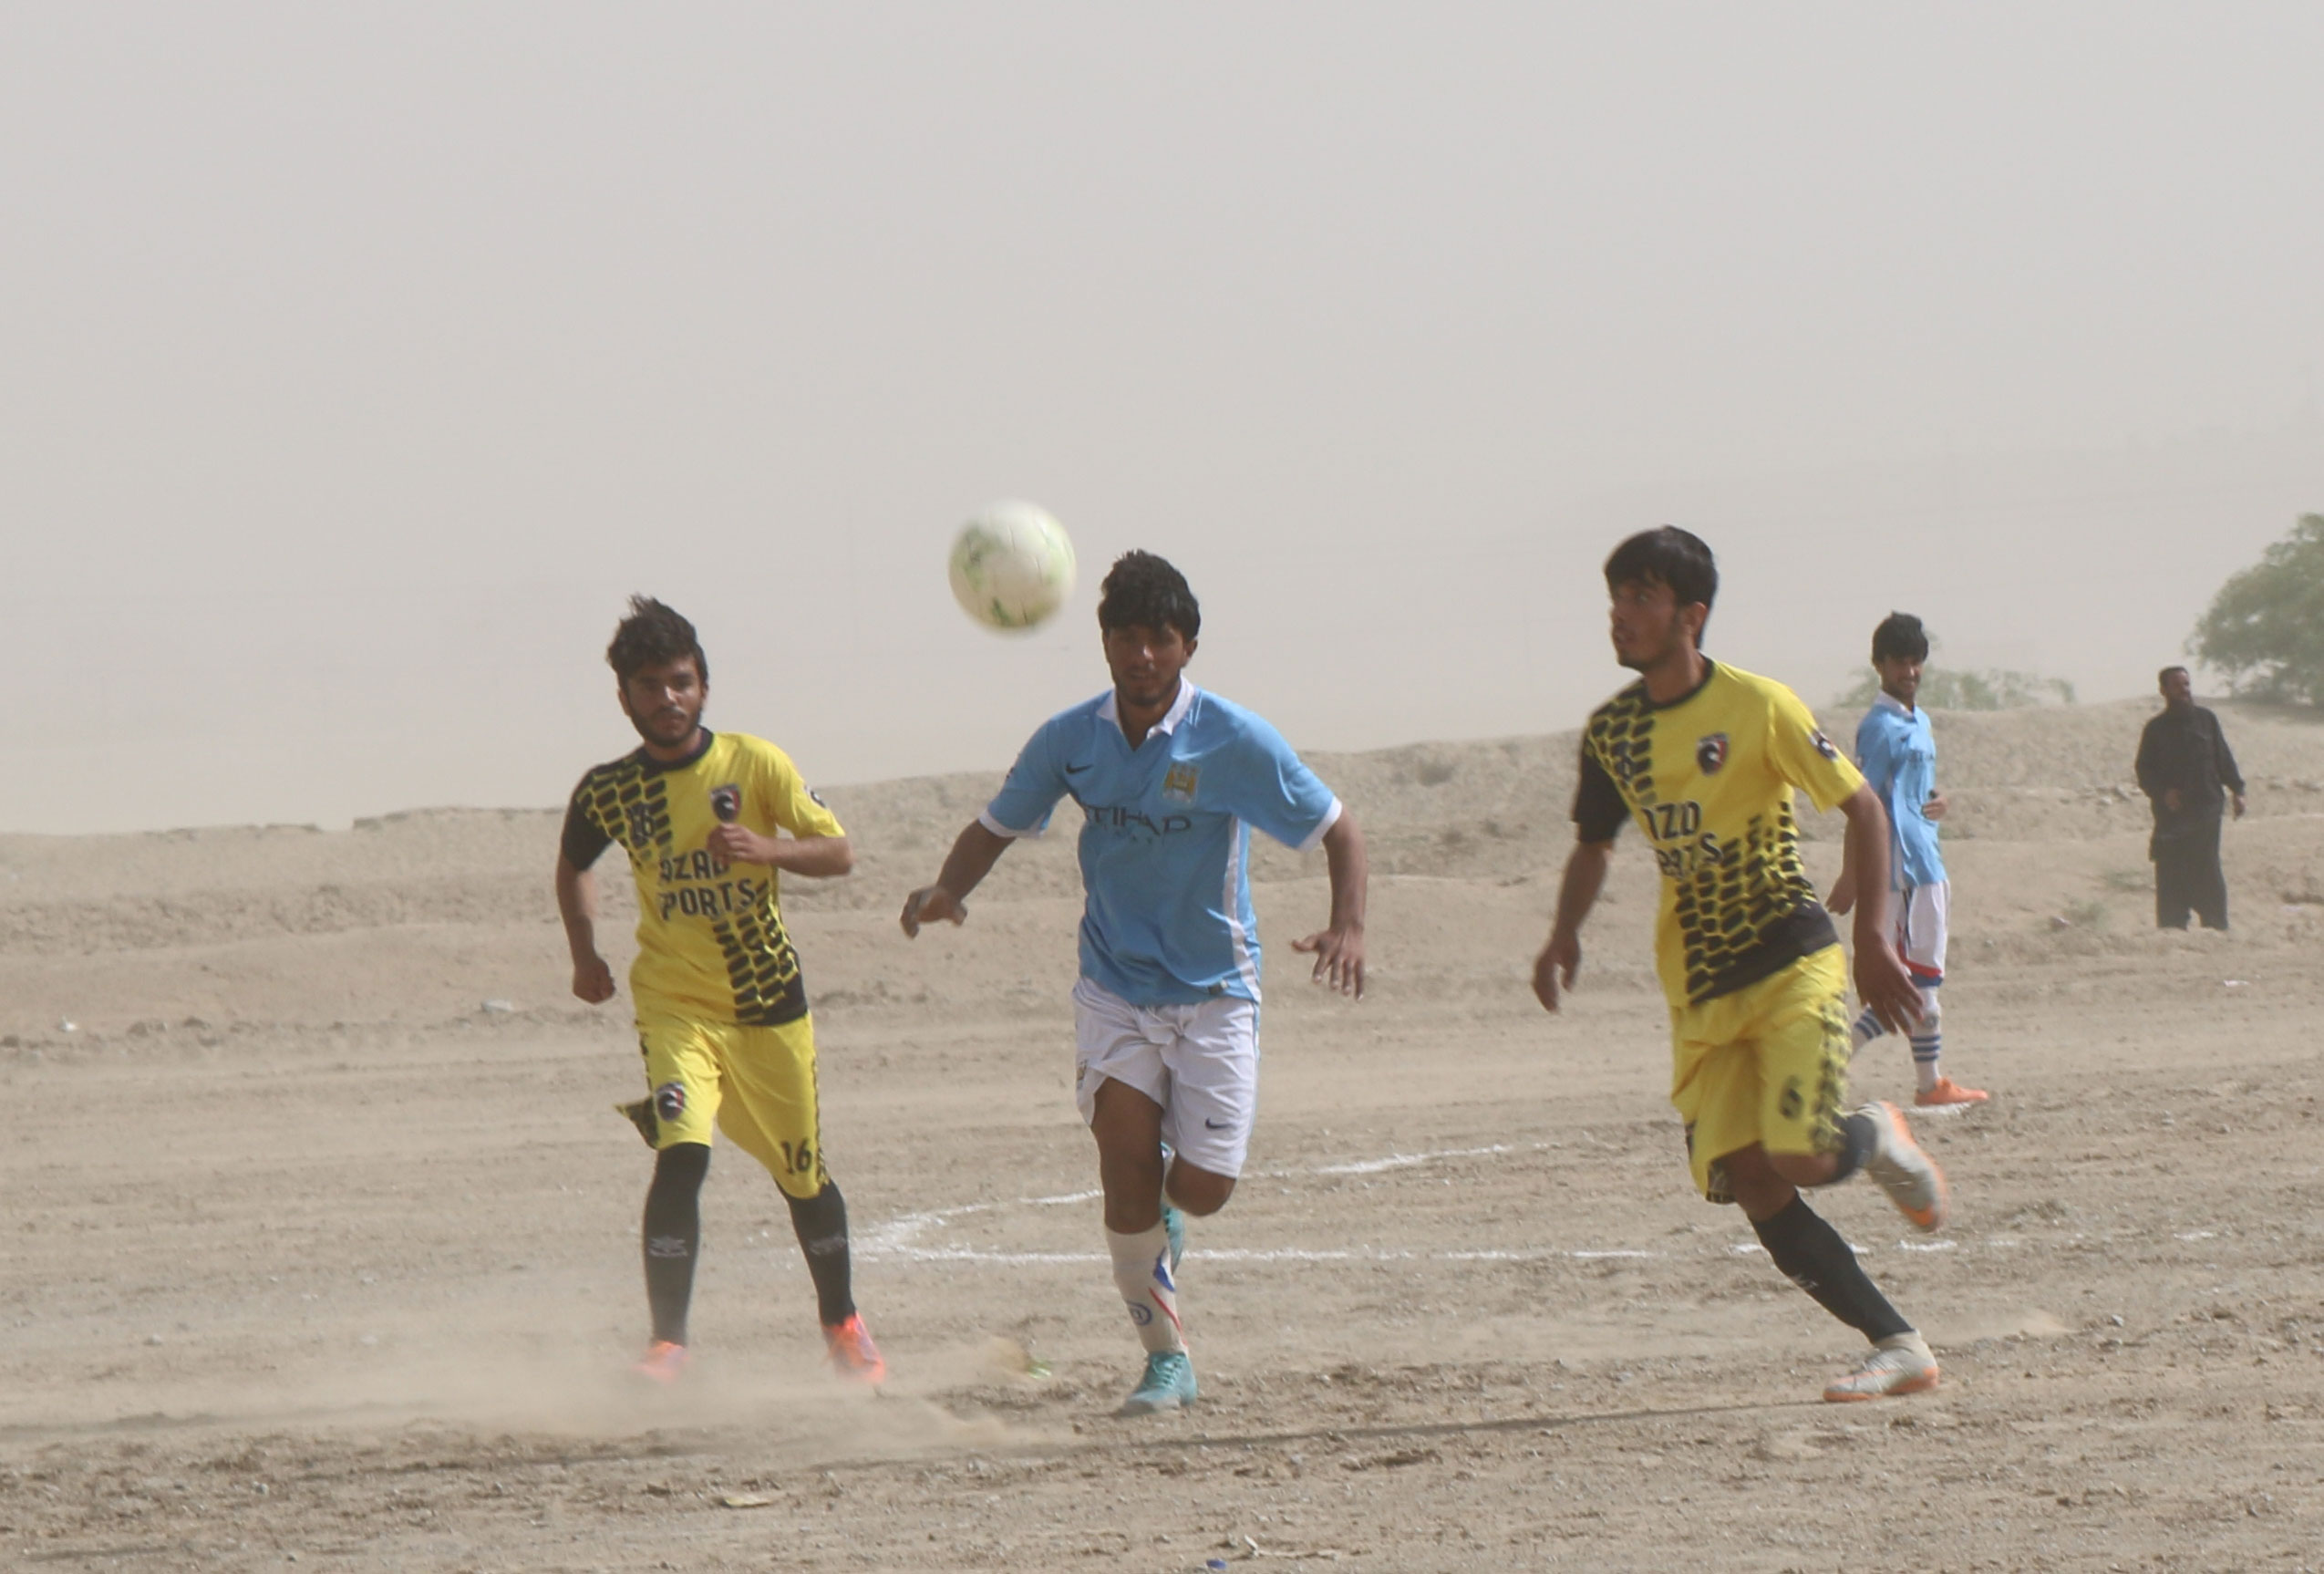 Ufone Balochistan Football Cup: Teams battle it out in Noshki for a place in the Quarterfinals